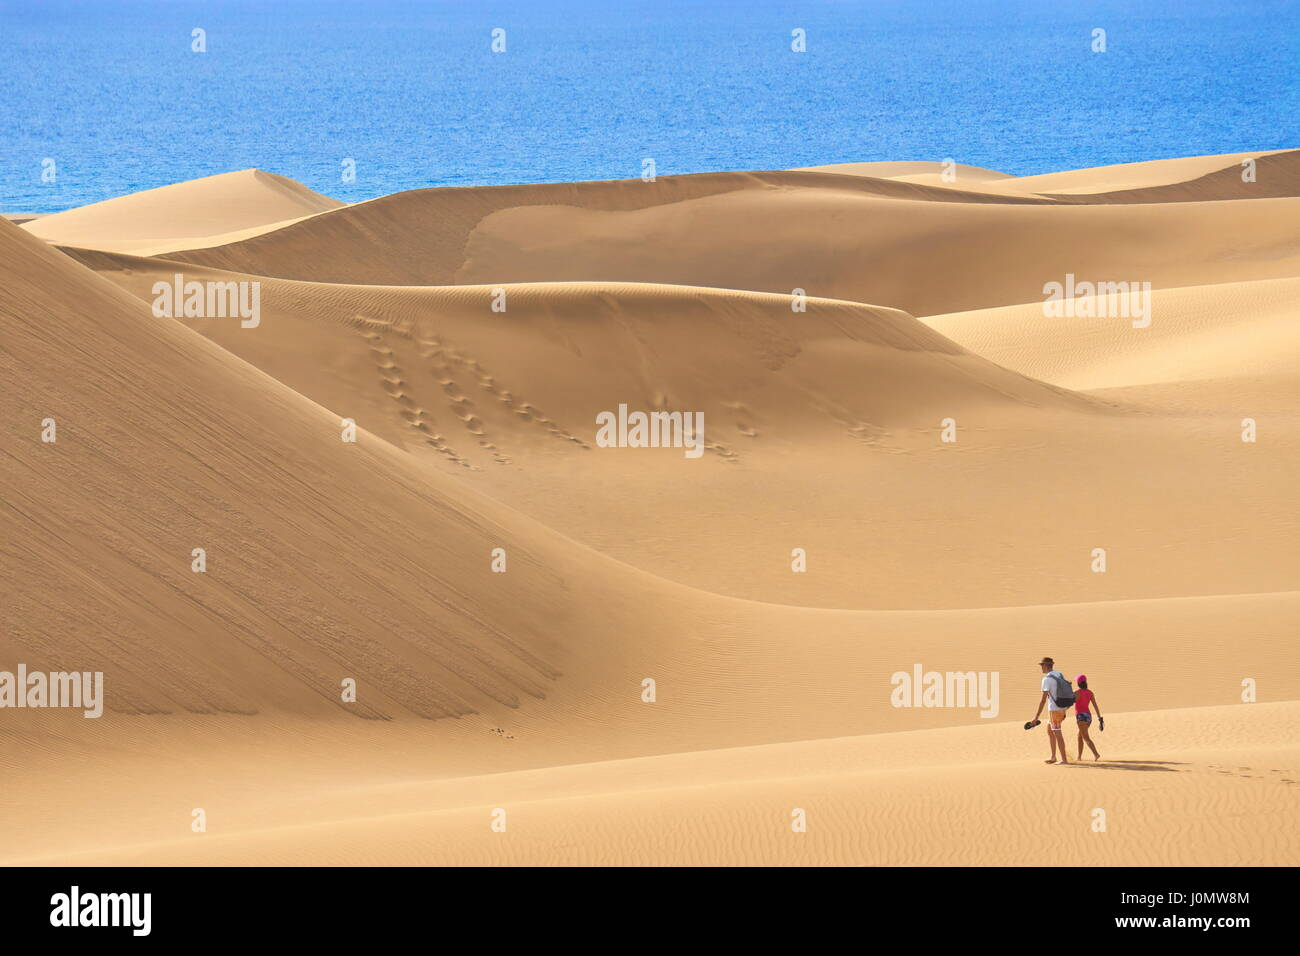 Tourists on the Maspalomas Sand Dunes National Park, Gran Canaria, Spain - Stock Image